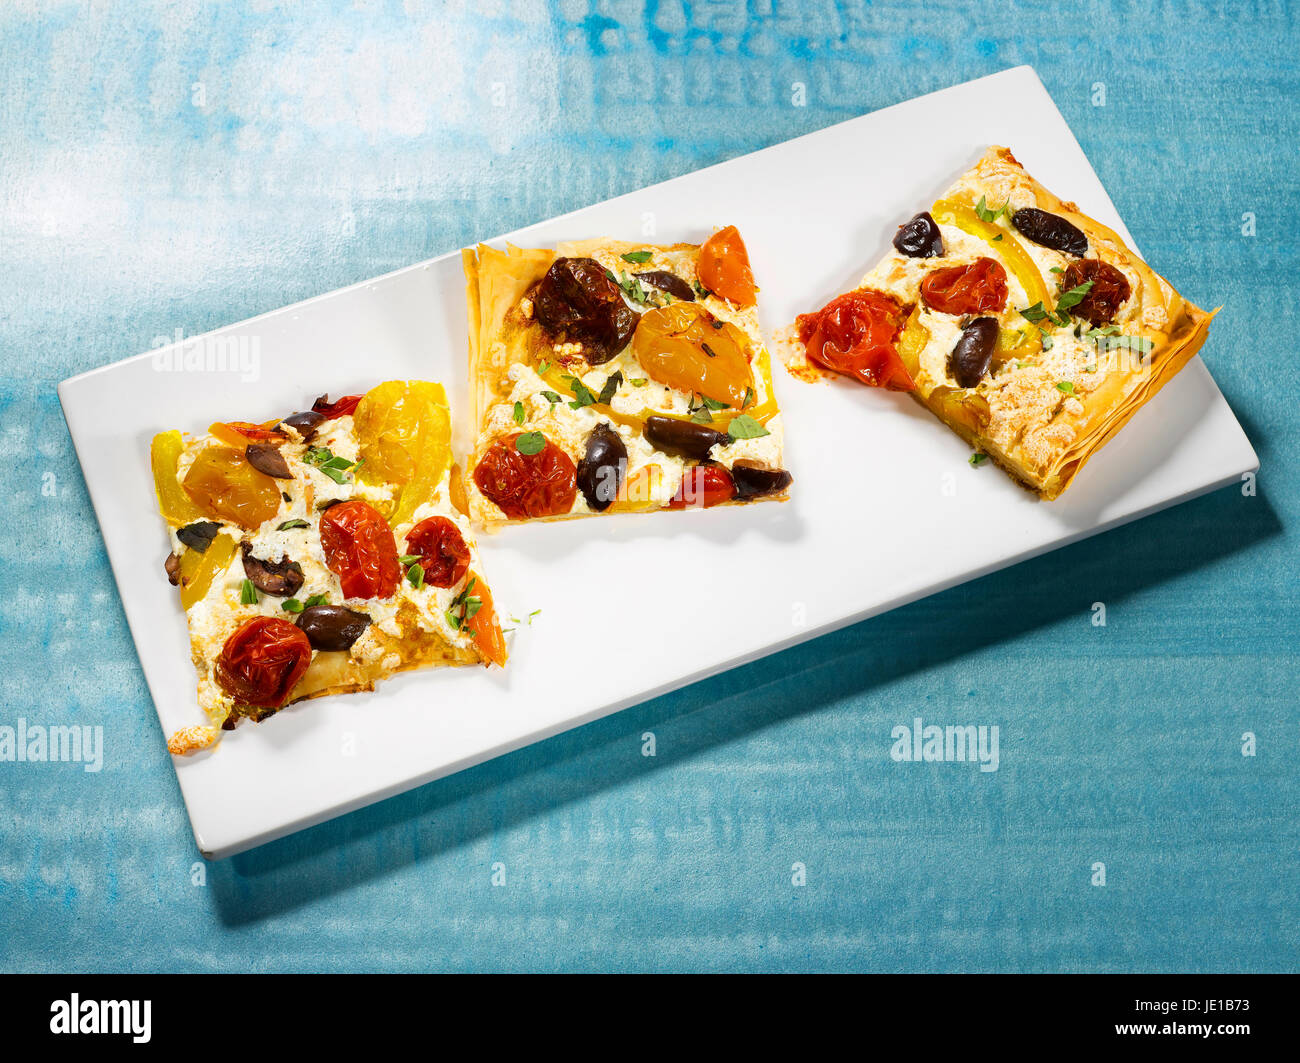 phyllo dough pizza squares - Stock Image